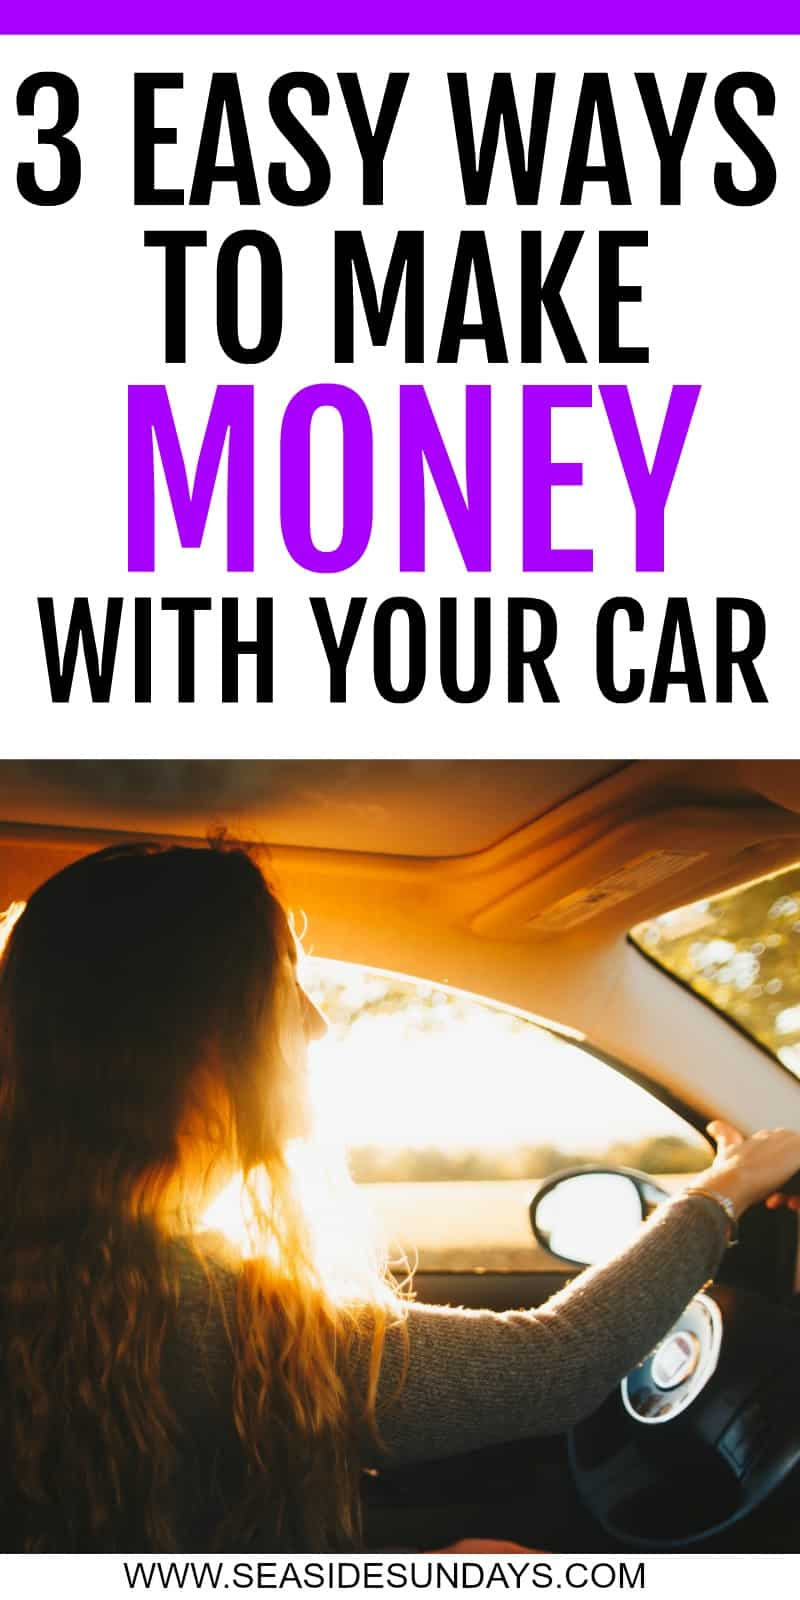 3 Easy Ways to Make Money with Your Car!